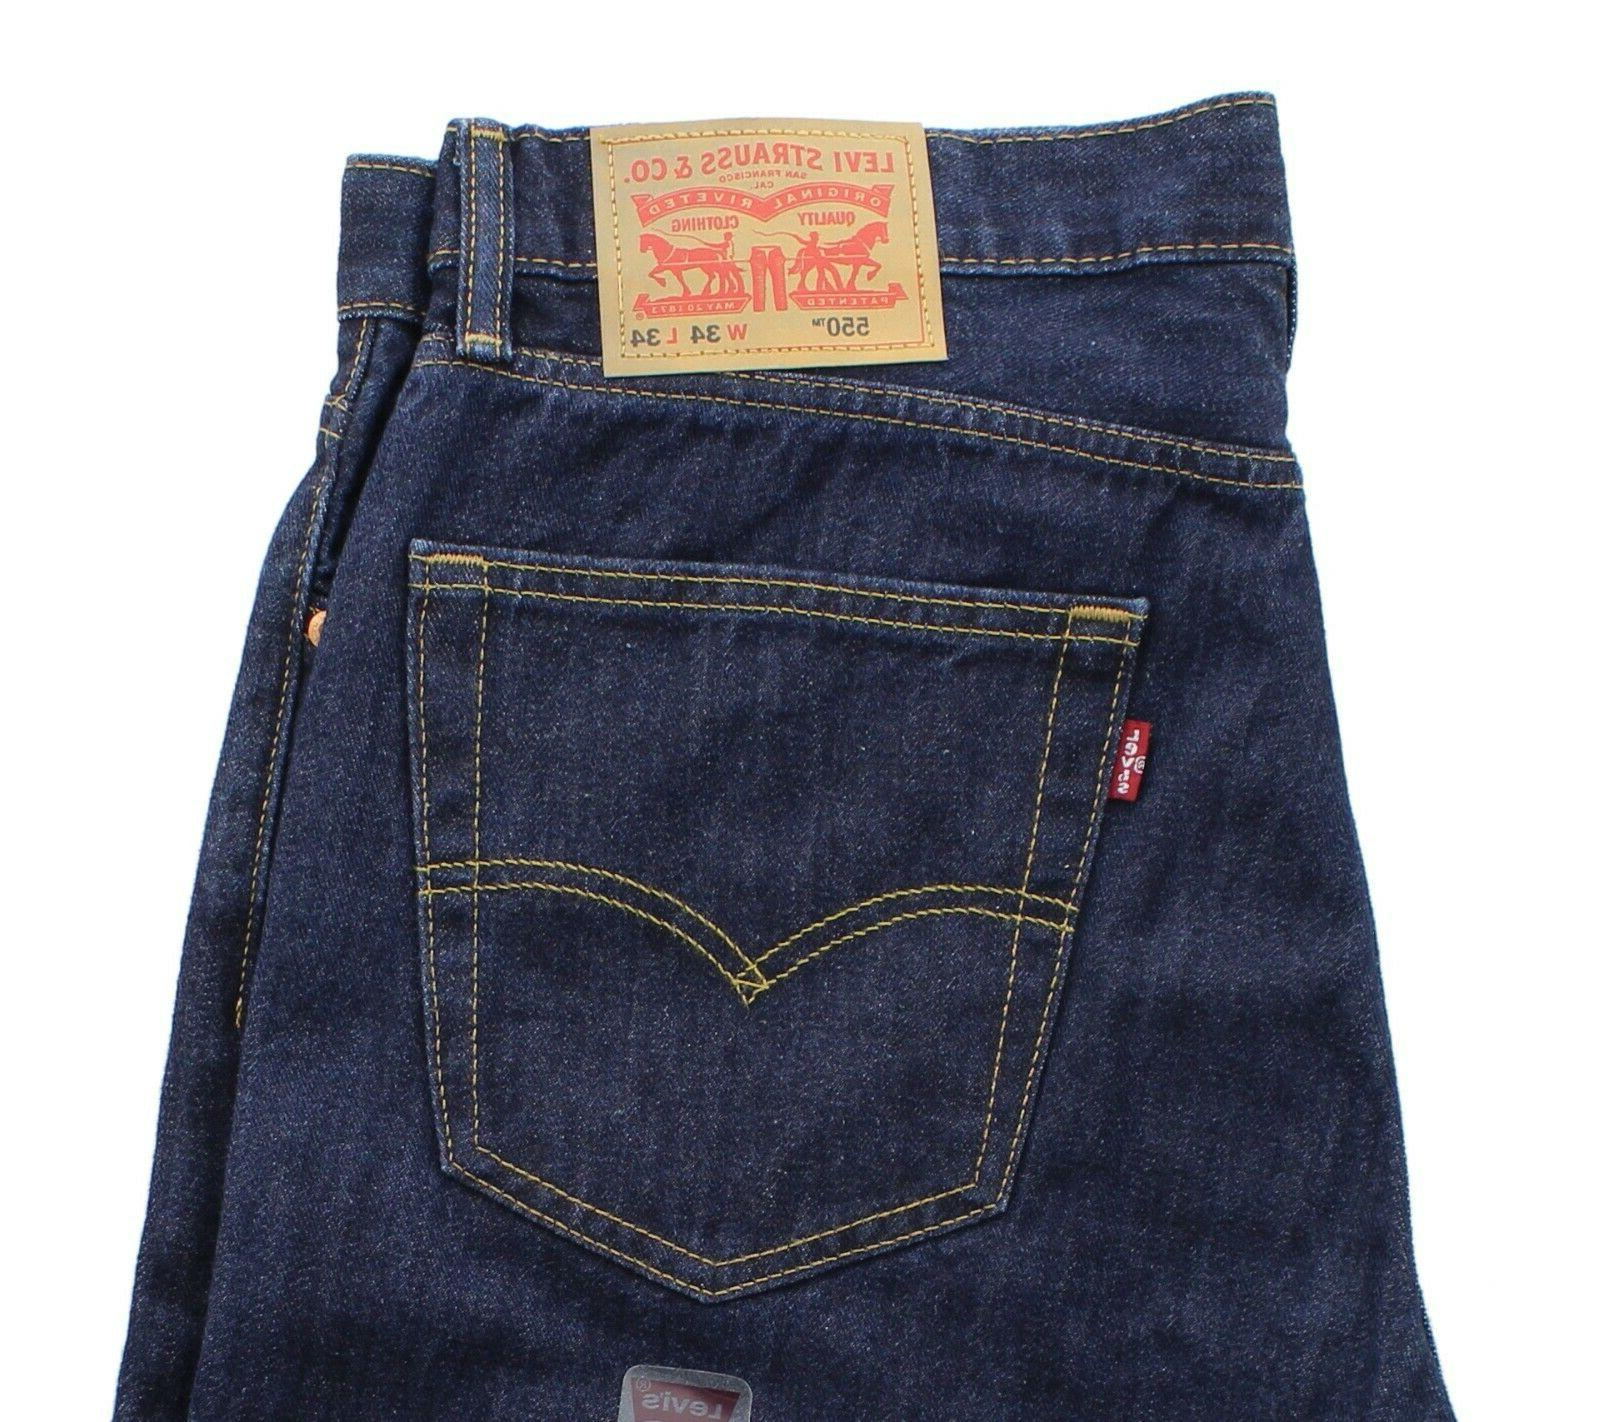 Levi's Men's Jeans Fit Denim